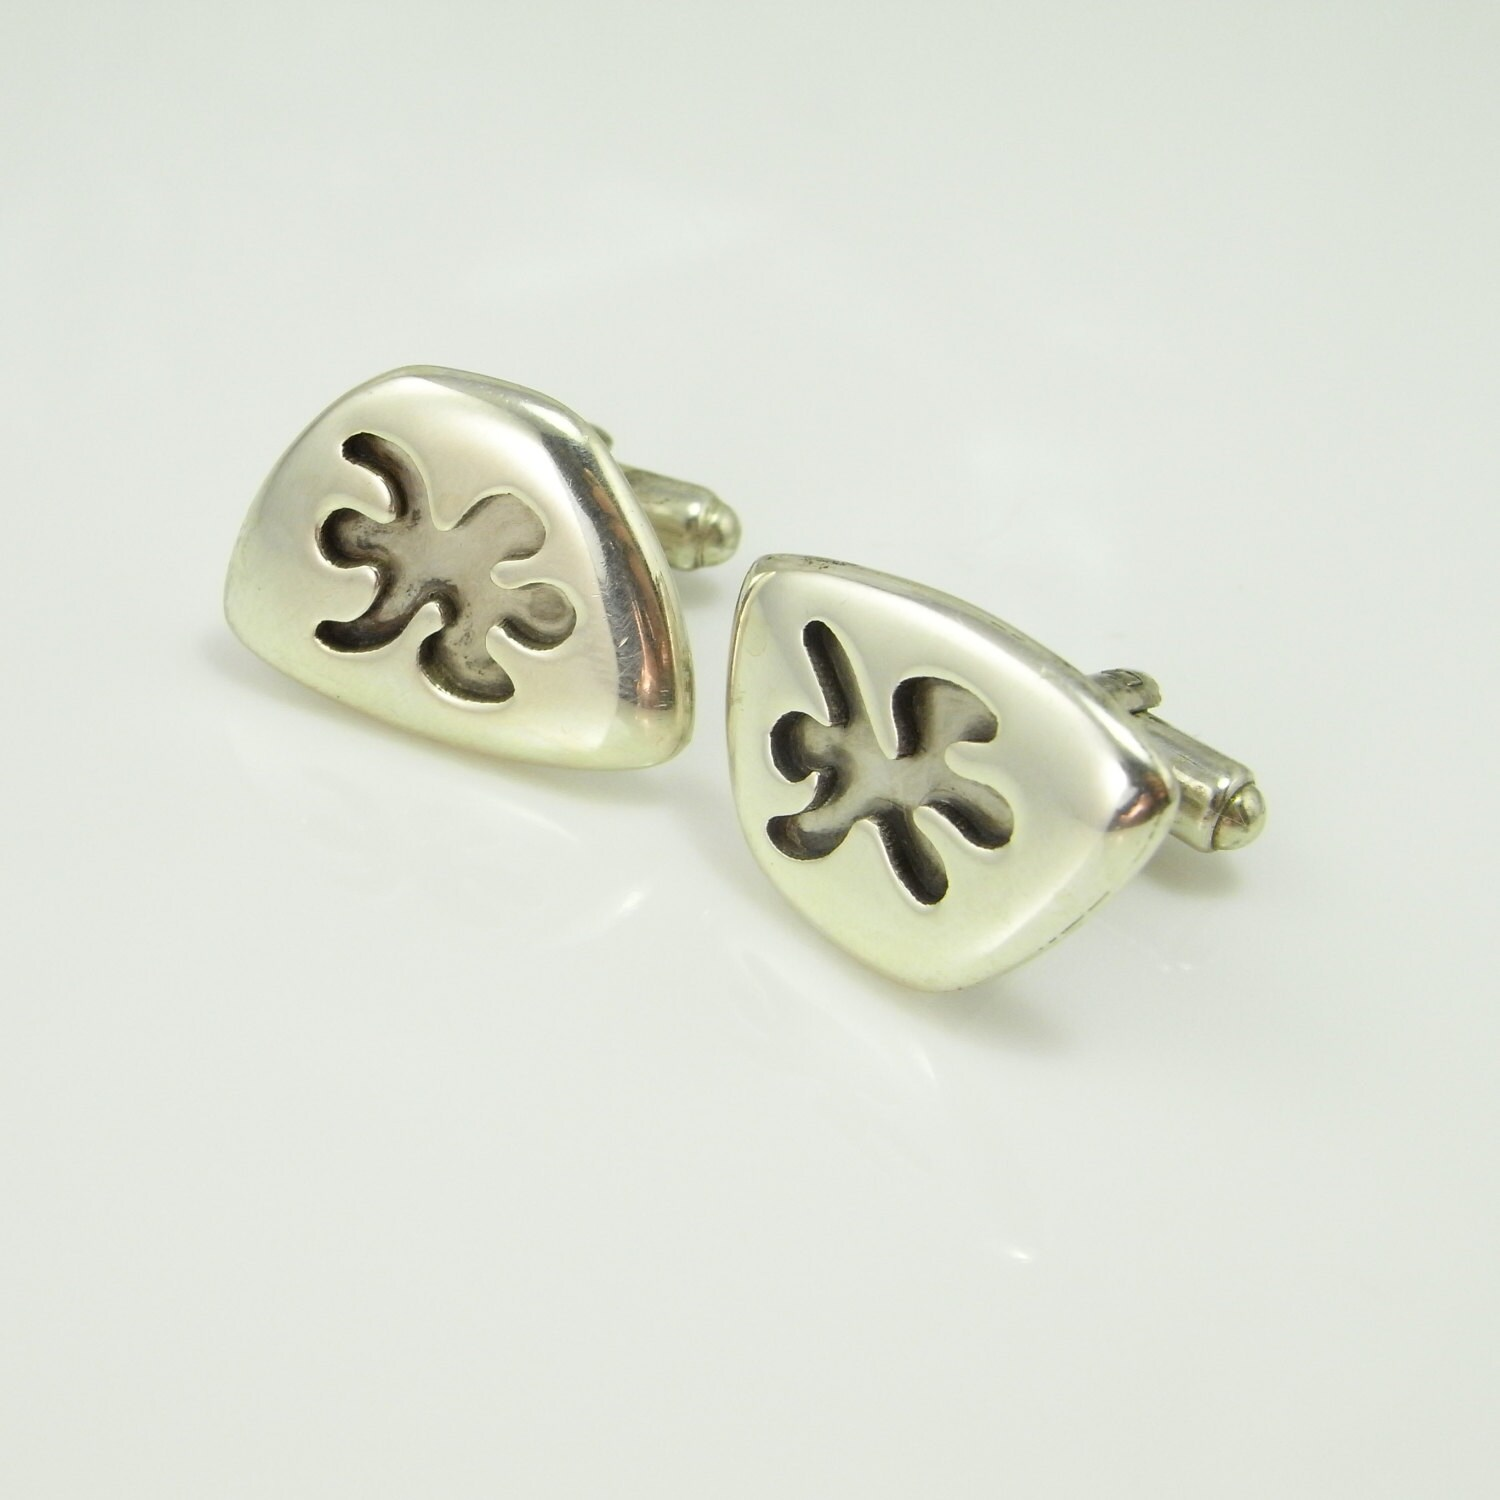 Abstract Floral Daisy Lozenge European Silver Cuff Links Unique Vintage Mens Wedding Cufflinks Jewelry For Groom Accessories Gifts